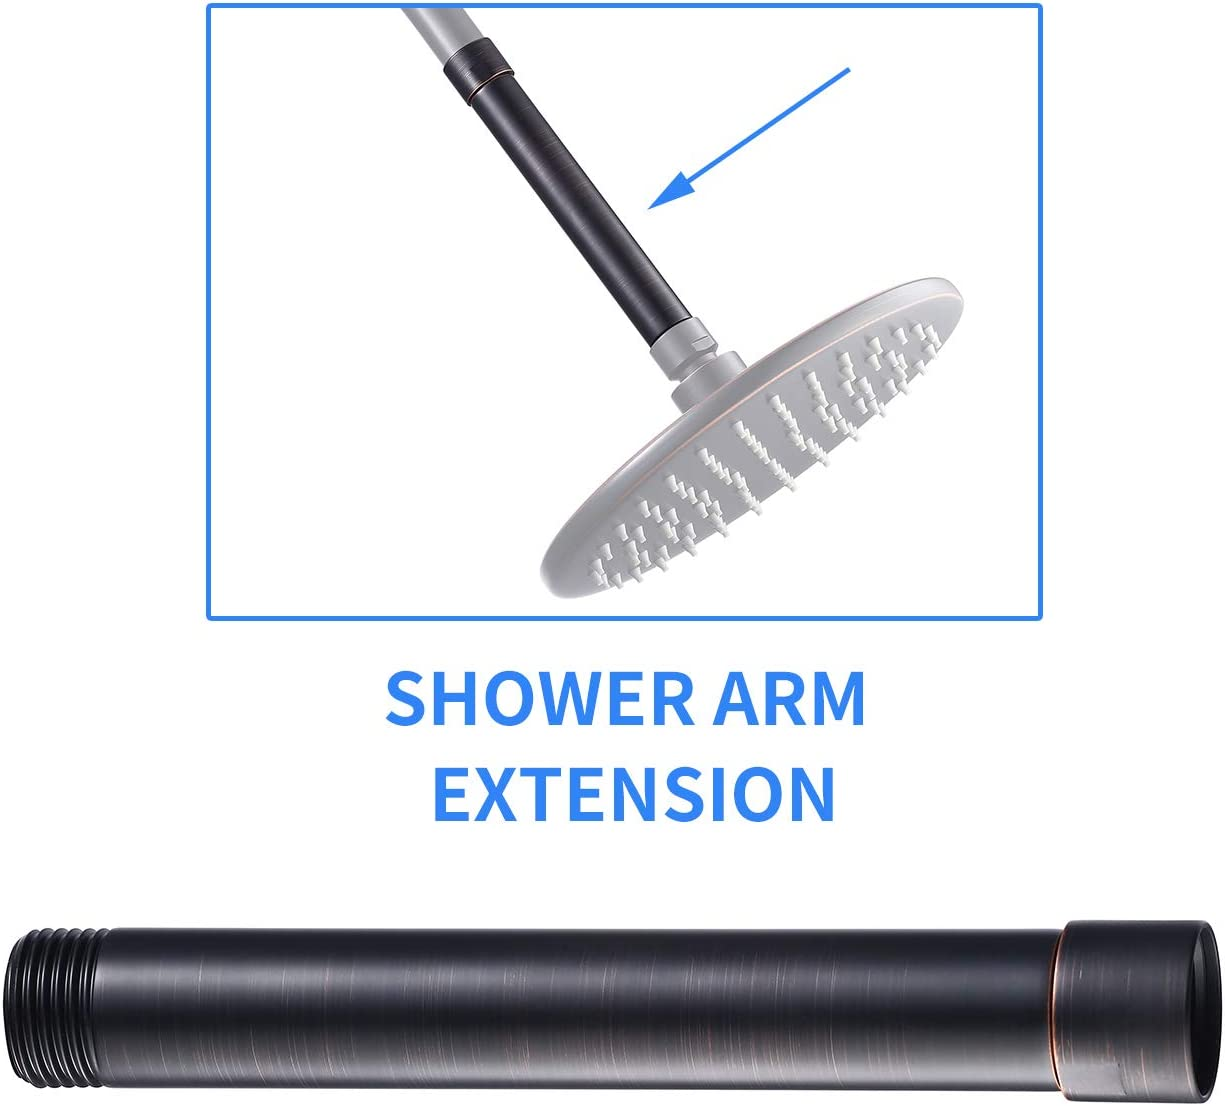 6 Inch Brass Shower Arm Extender Hardware Chrome Y200C KLXHOME Shower Head Extension Arm